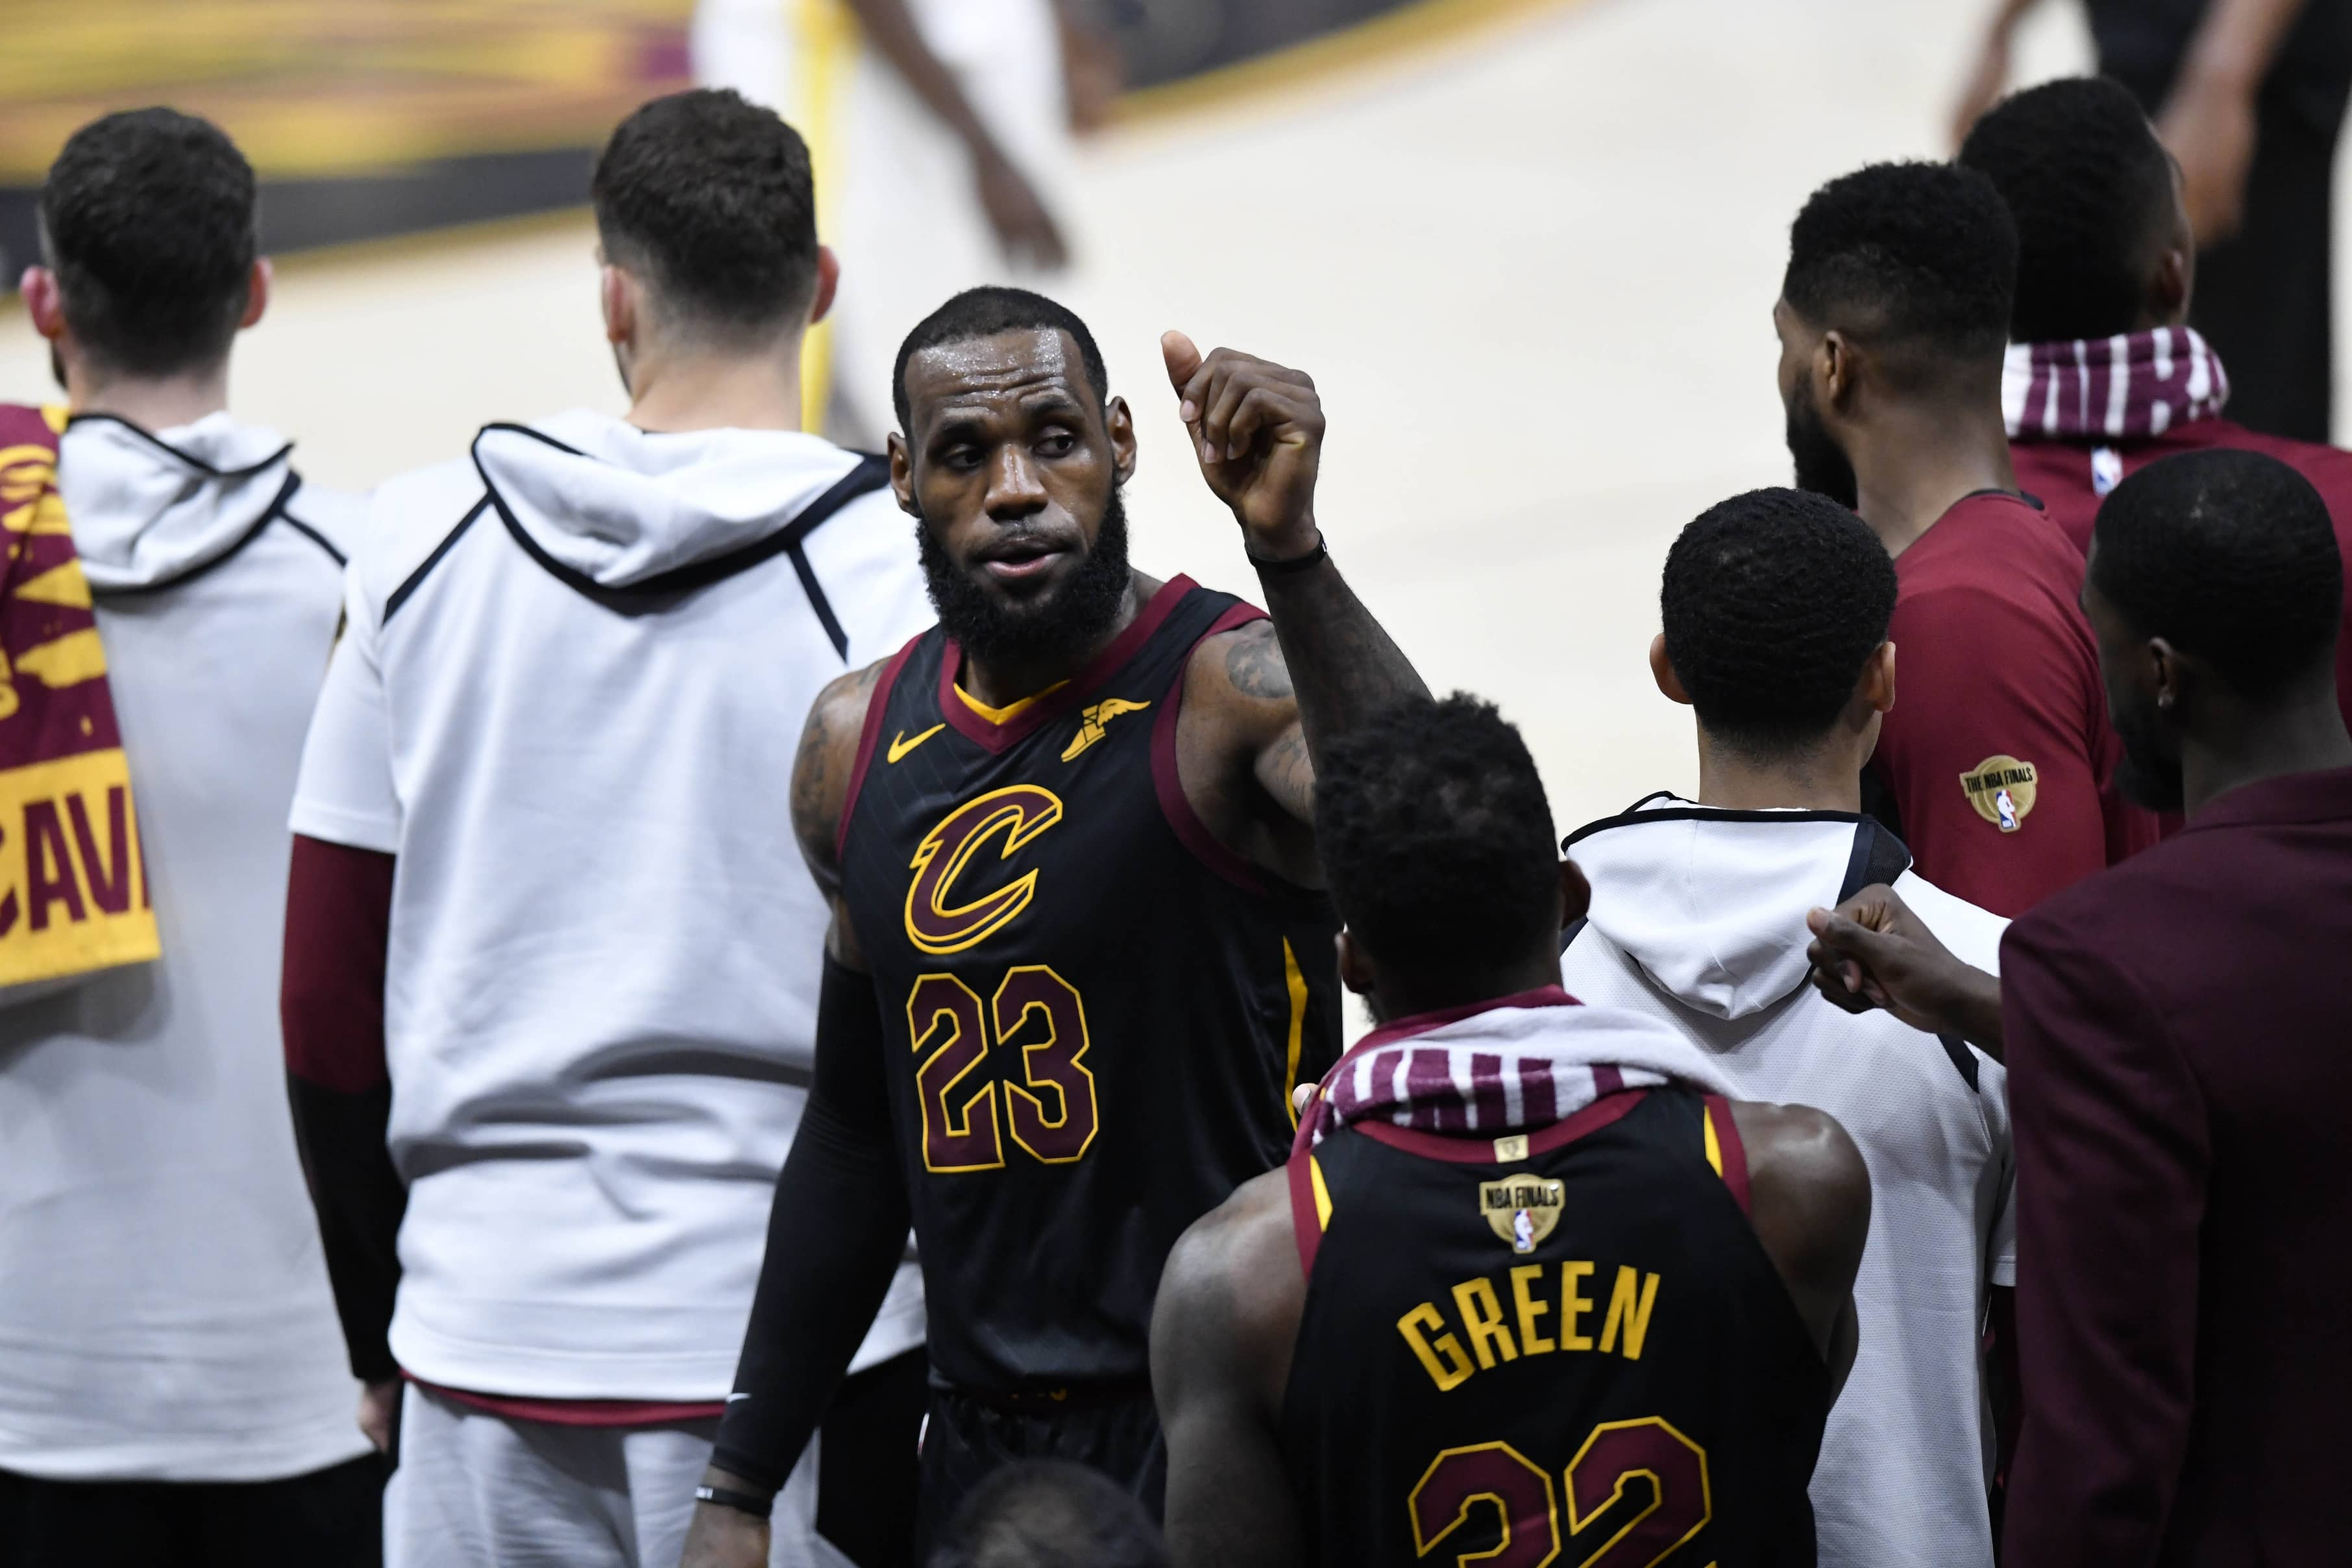 WATCH: LeBron gets standing ovation after potentially final game with Cavs